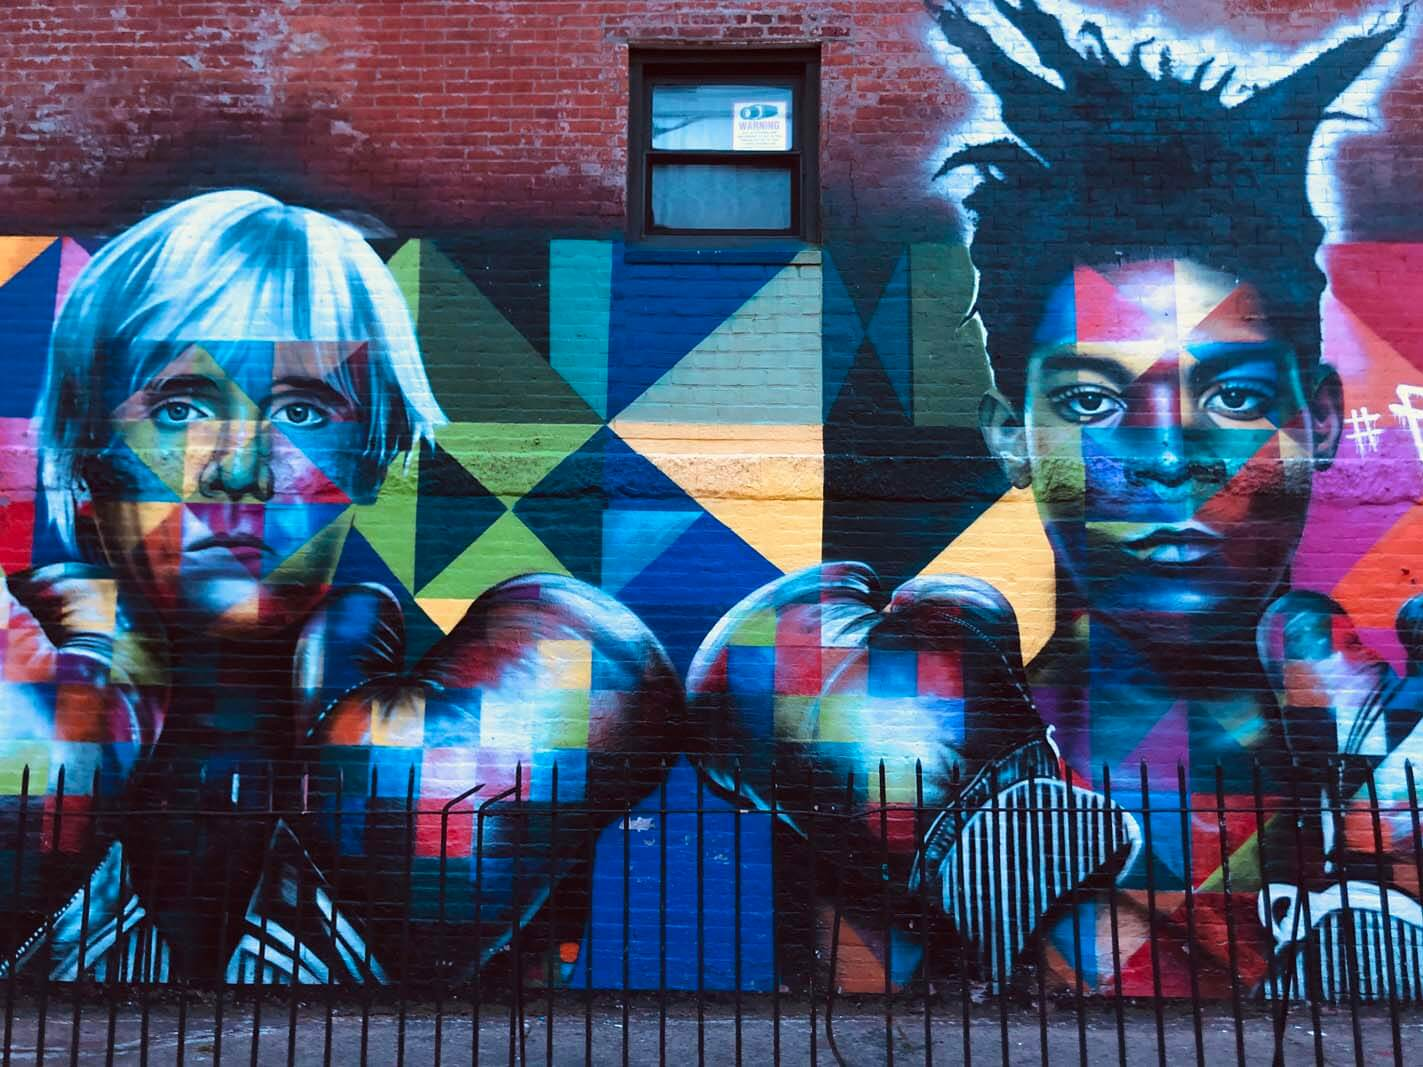 Jean-Michel Basquiat and Andy Warhol by KOBRA in Williamsburg